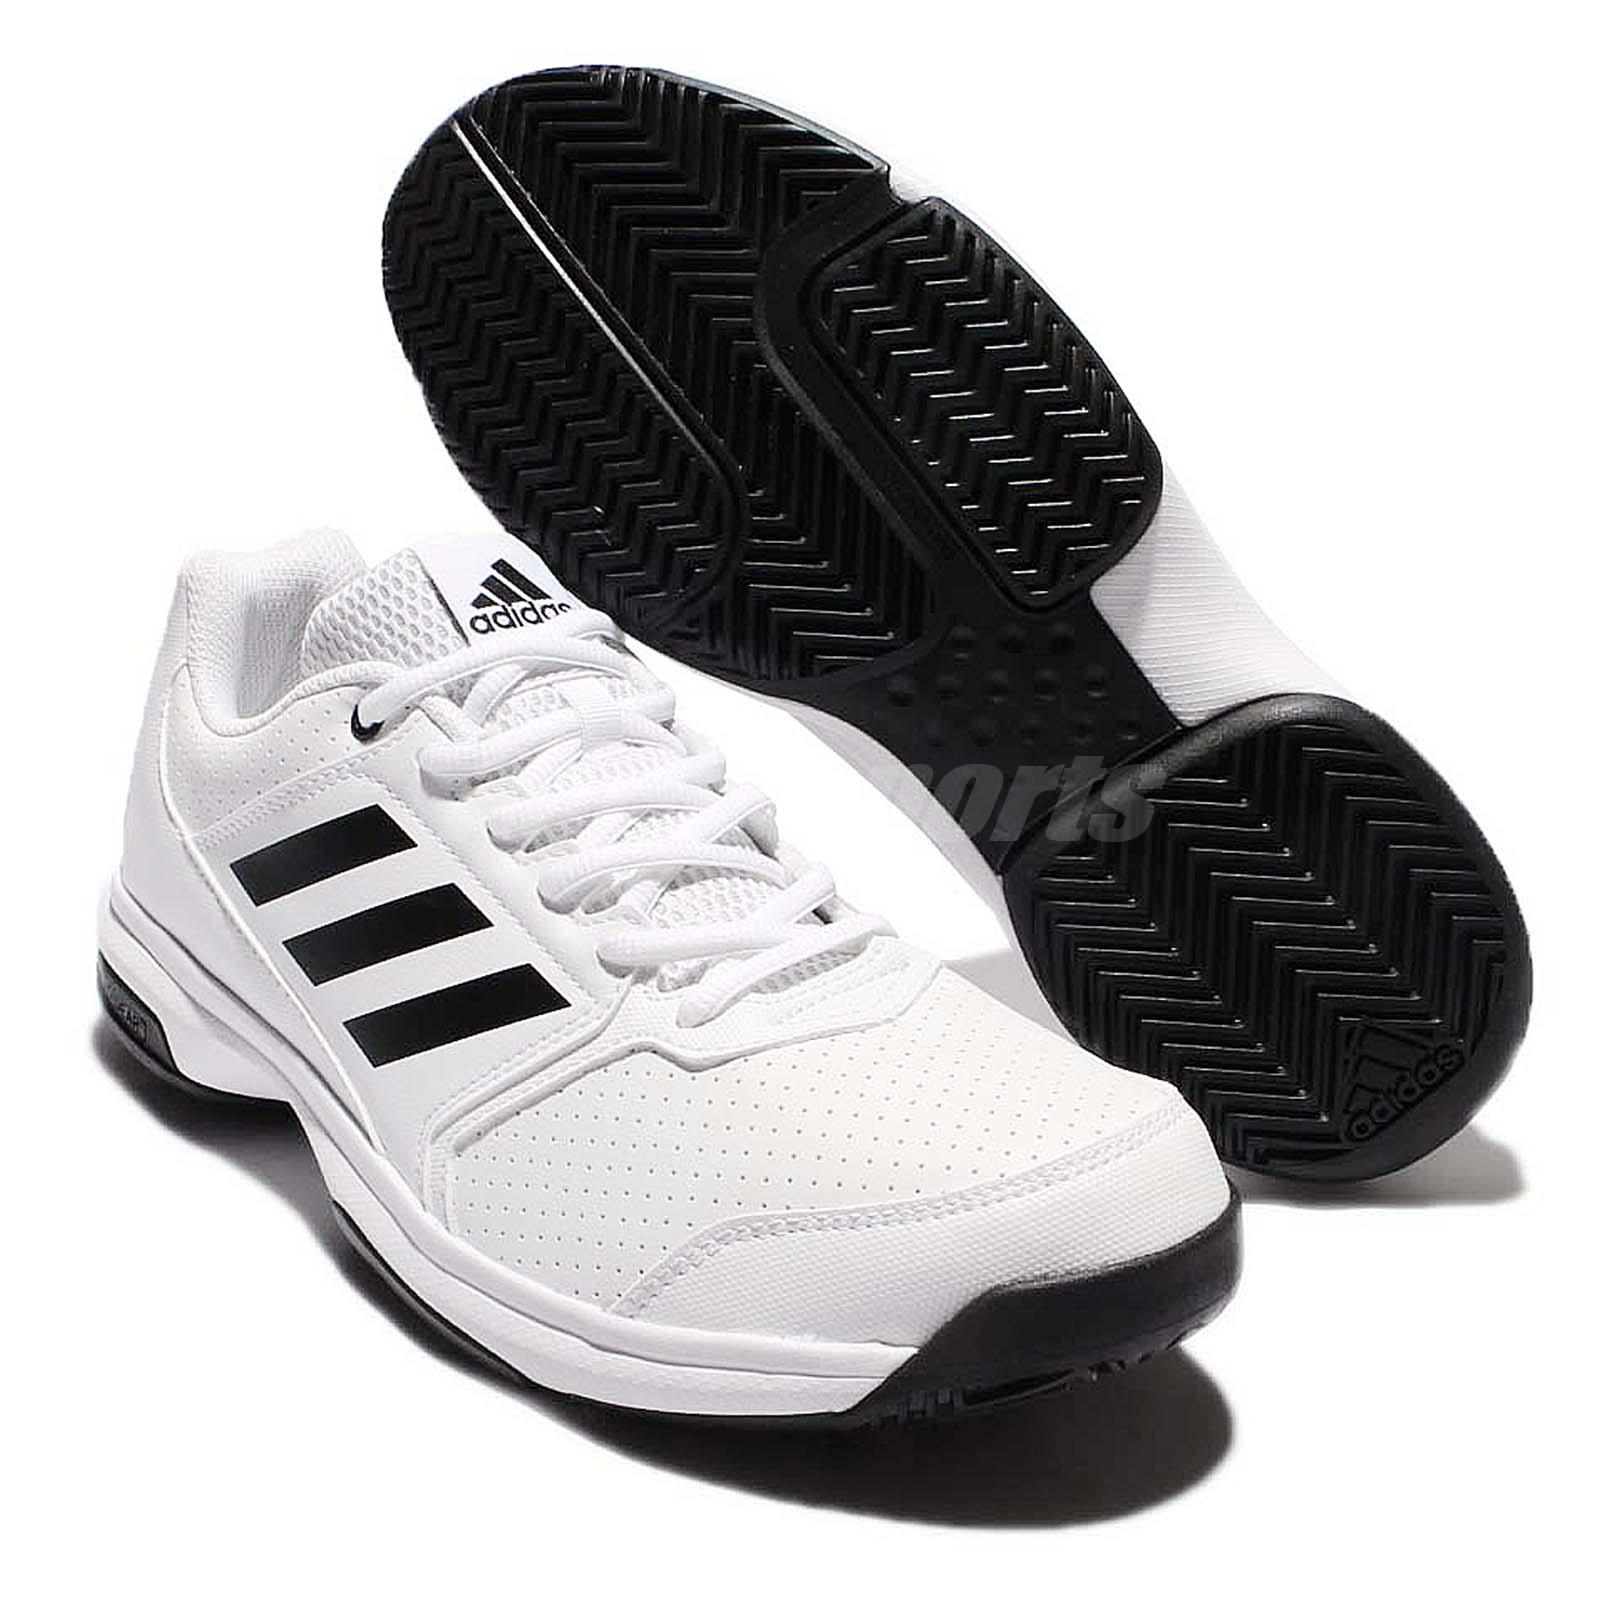 on sale 82cba f951c Men u0027s tennis shoes adidas Adizero Attack M AQ2364